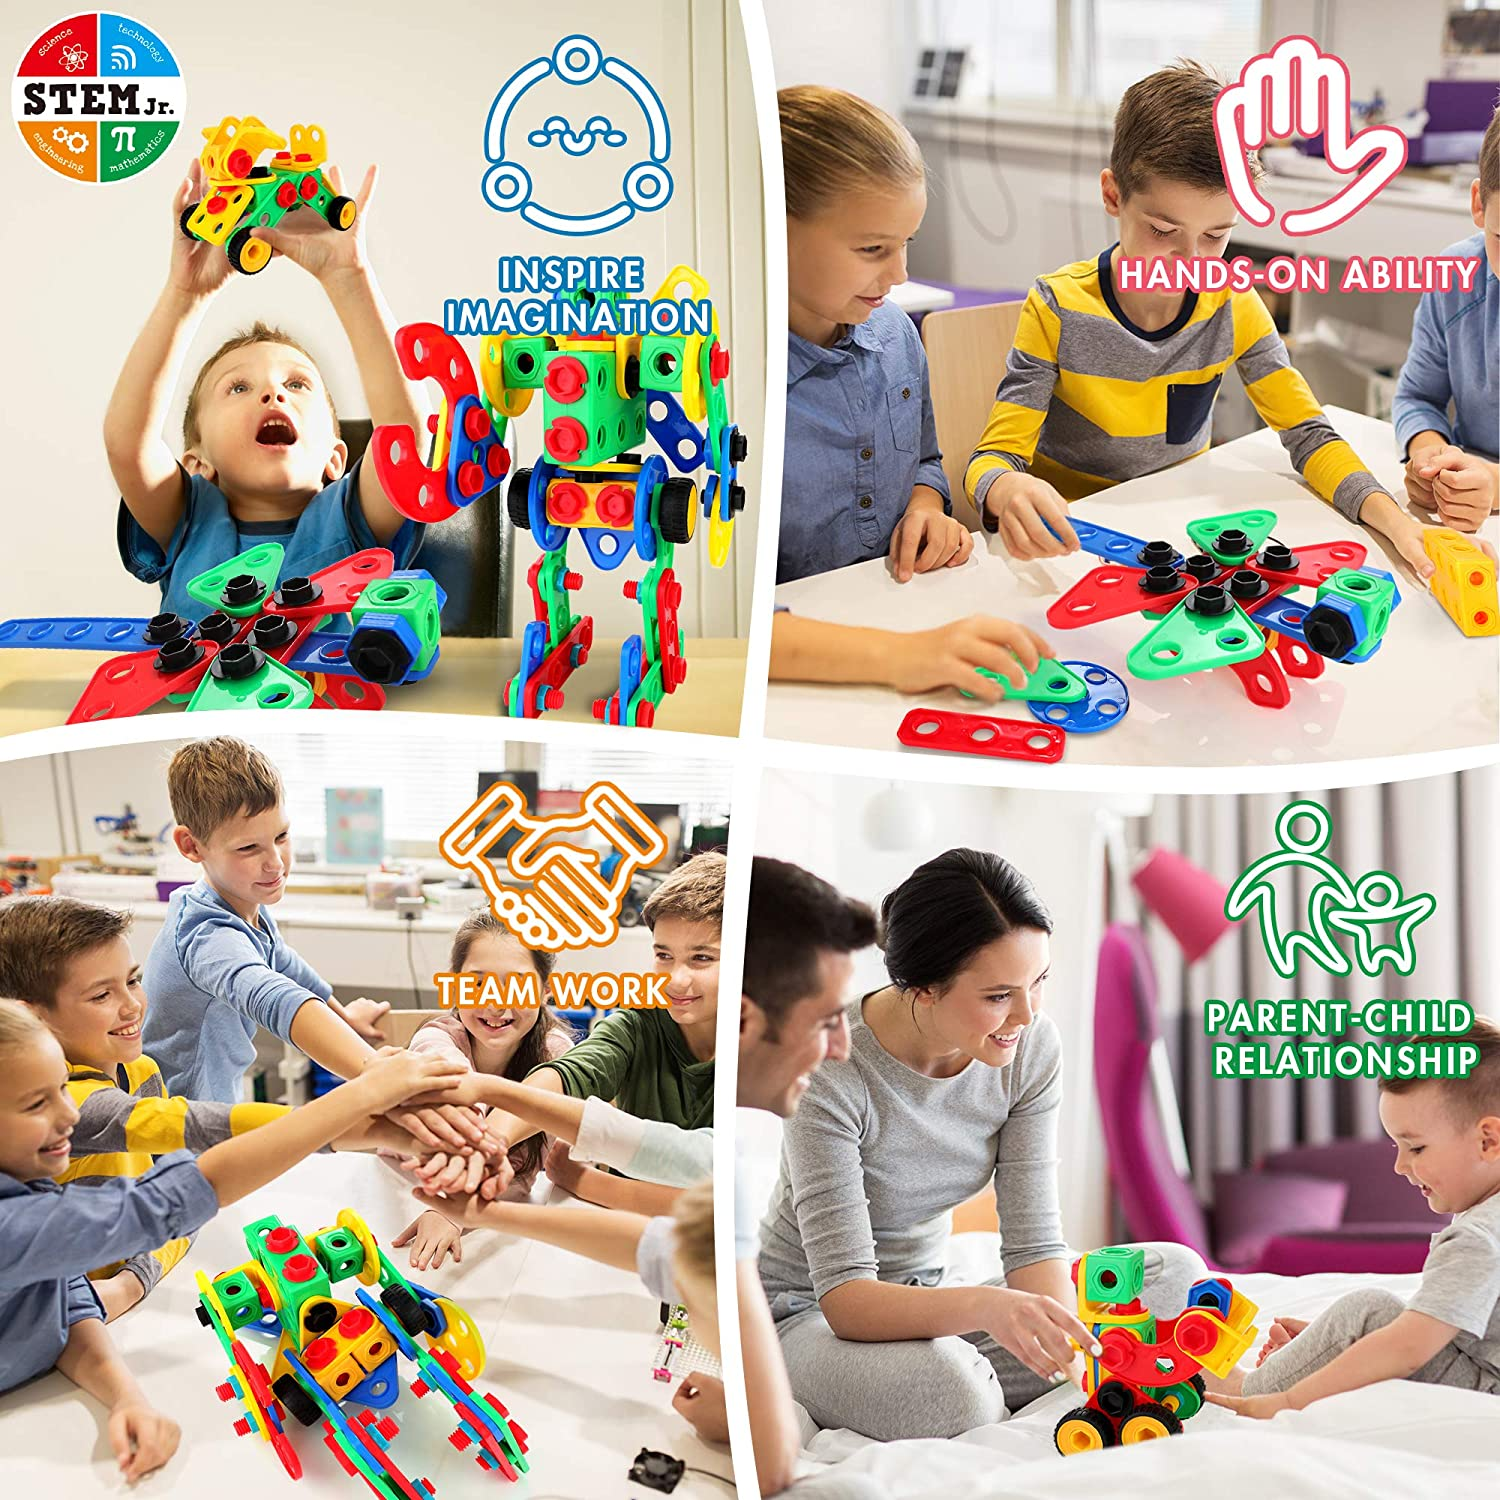 152 PCS Building Blocks Educational Construction Set with Electric Screwdriver Creative Learning Toys for 3-10 Boys and Girls KIDWILL STEM Toy Building Kit Storage Box